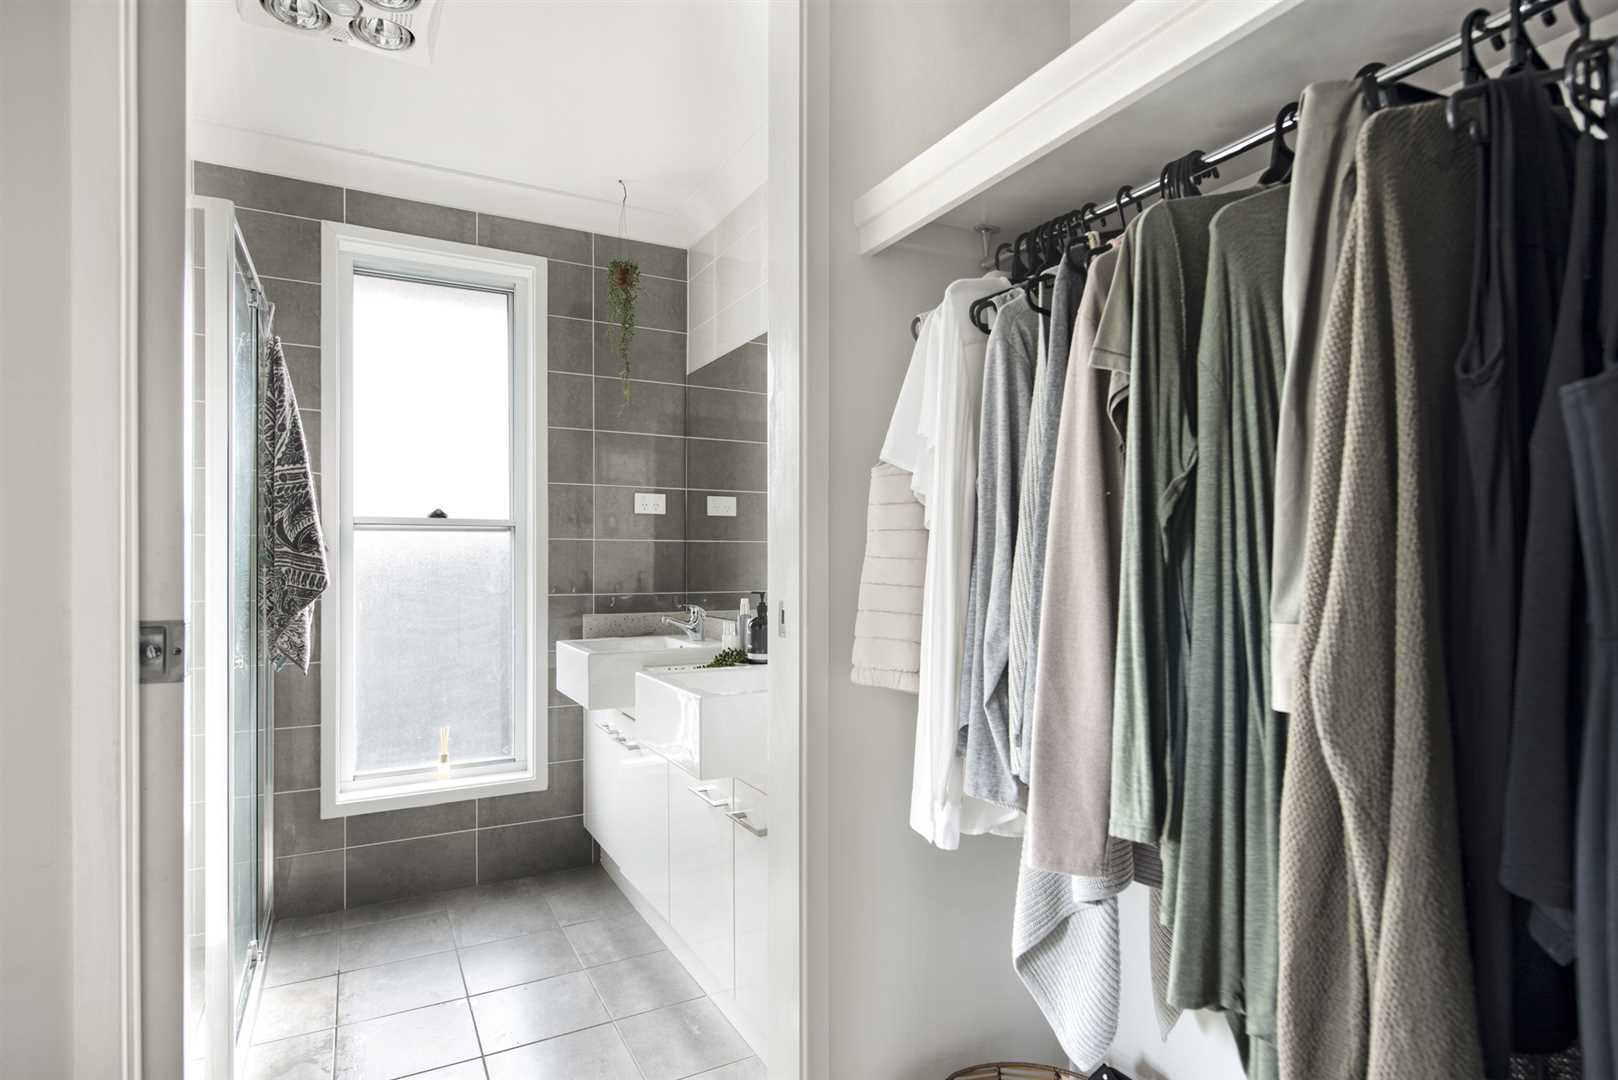 Ensuite and walk-in robe